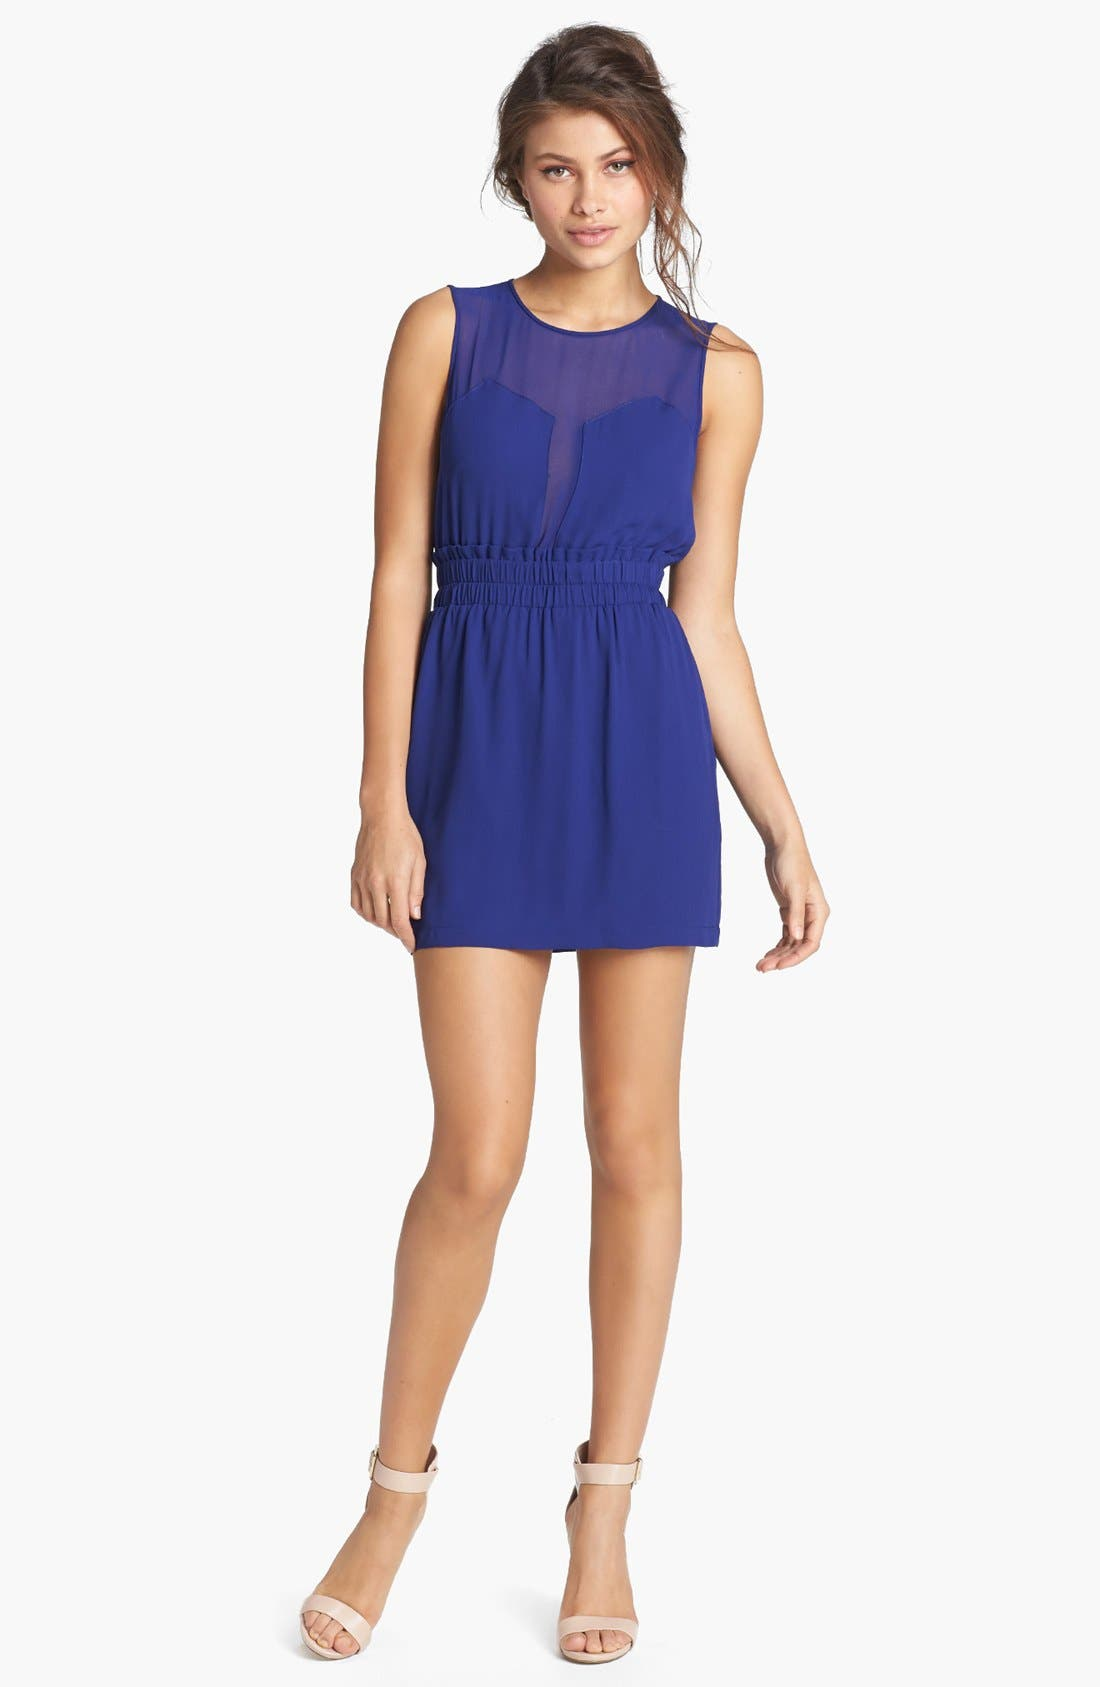 Alternate Image 1 Selected - BCBGMAXAZRIA Illusion Cutout Fit & Flare Dress